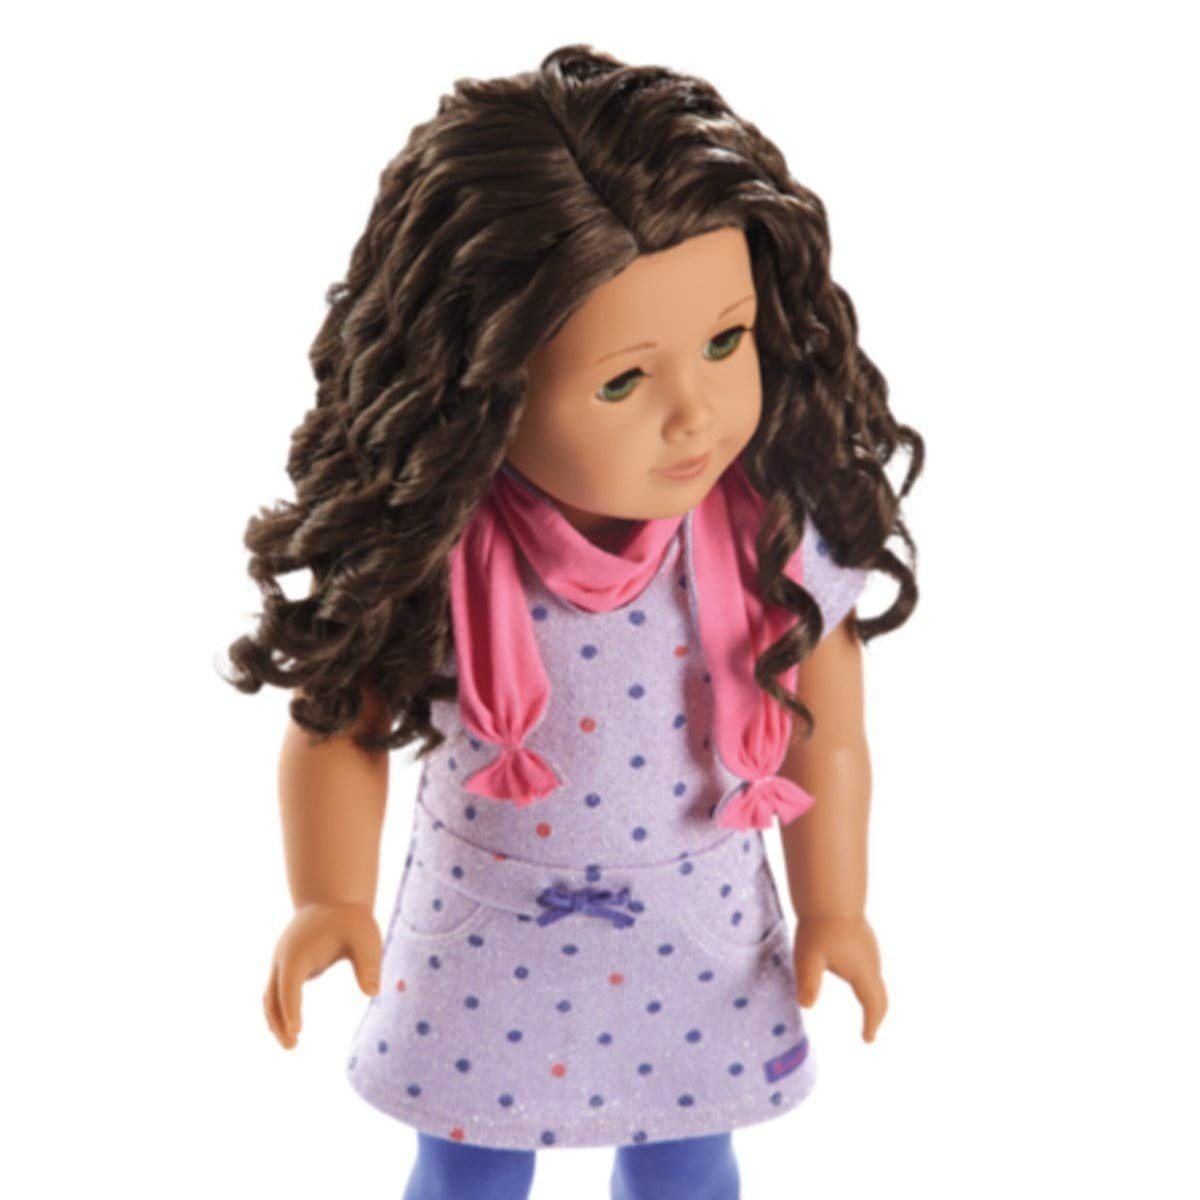 American Girl Truly Me Recess Ready Outfit in Bag No Shoes